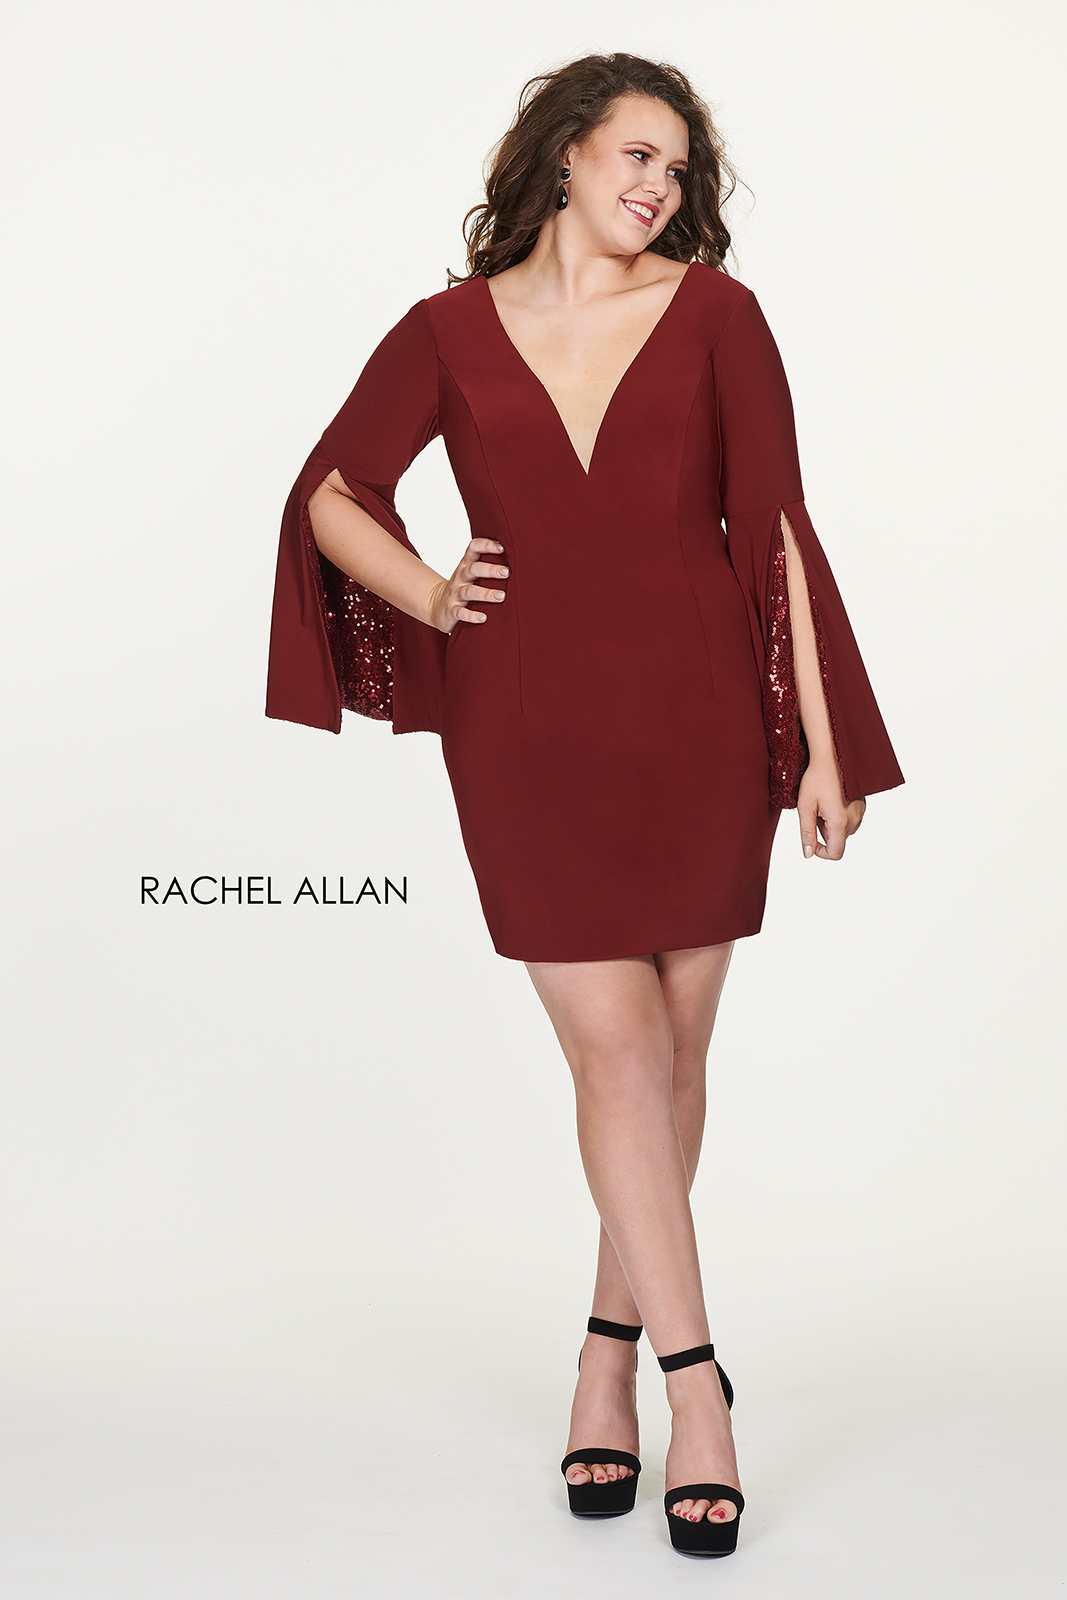 V-Neck Fitted Mini Homecoming Curves in Red Color